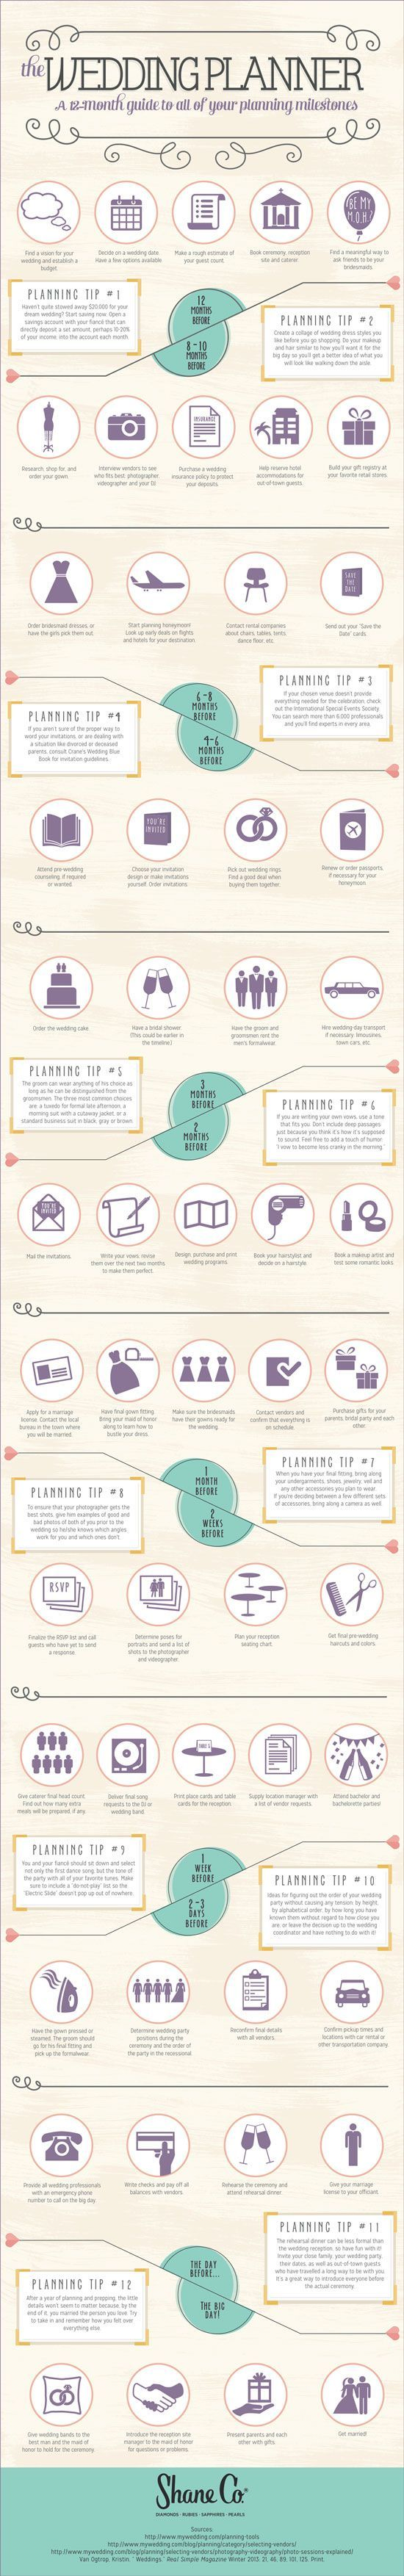 Infographic: Wedding Planning Timeline by ShaneCo